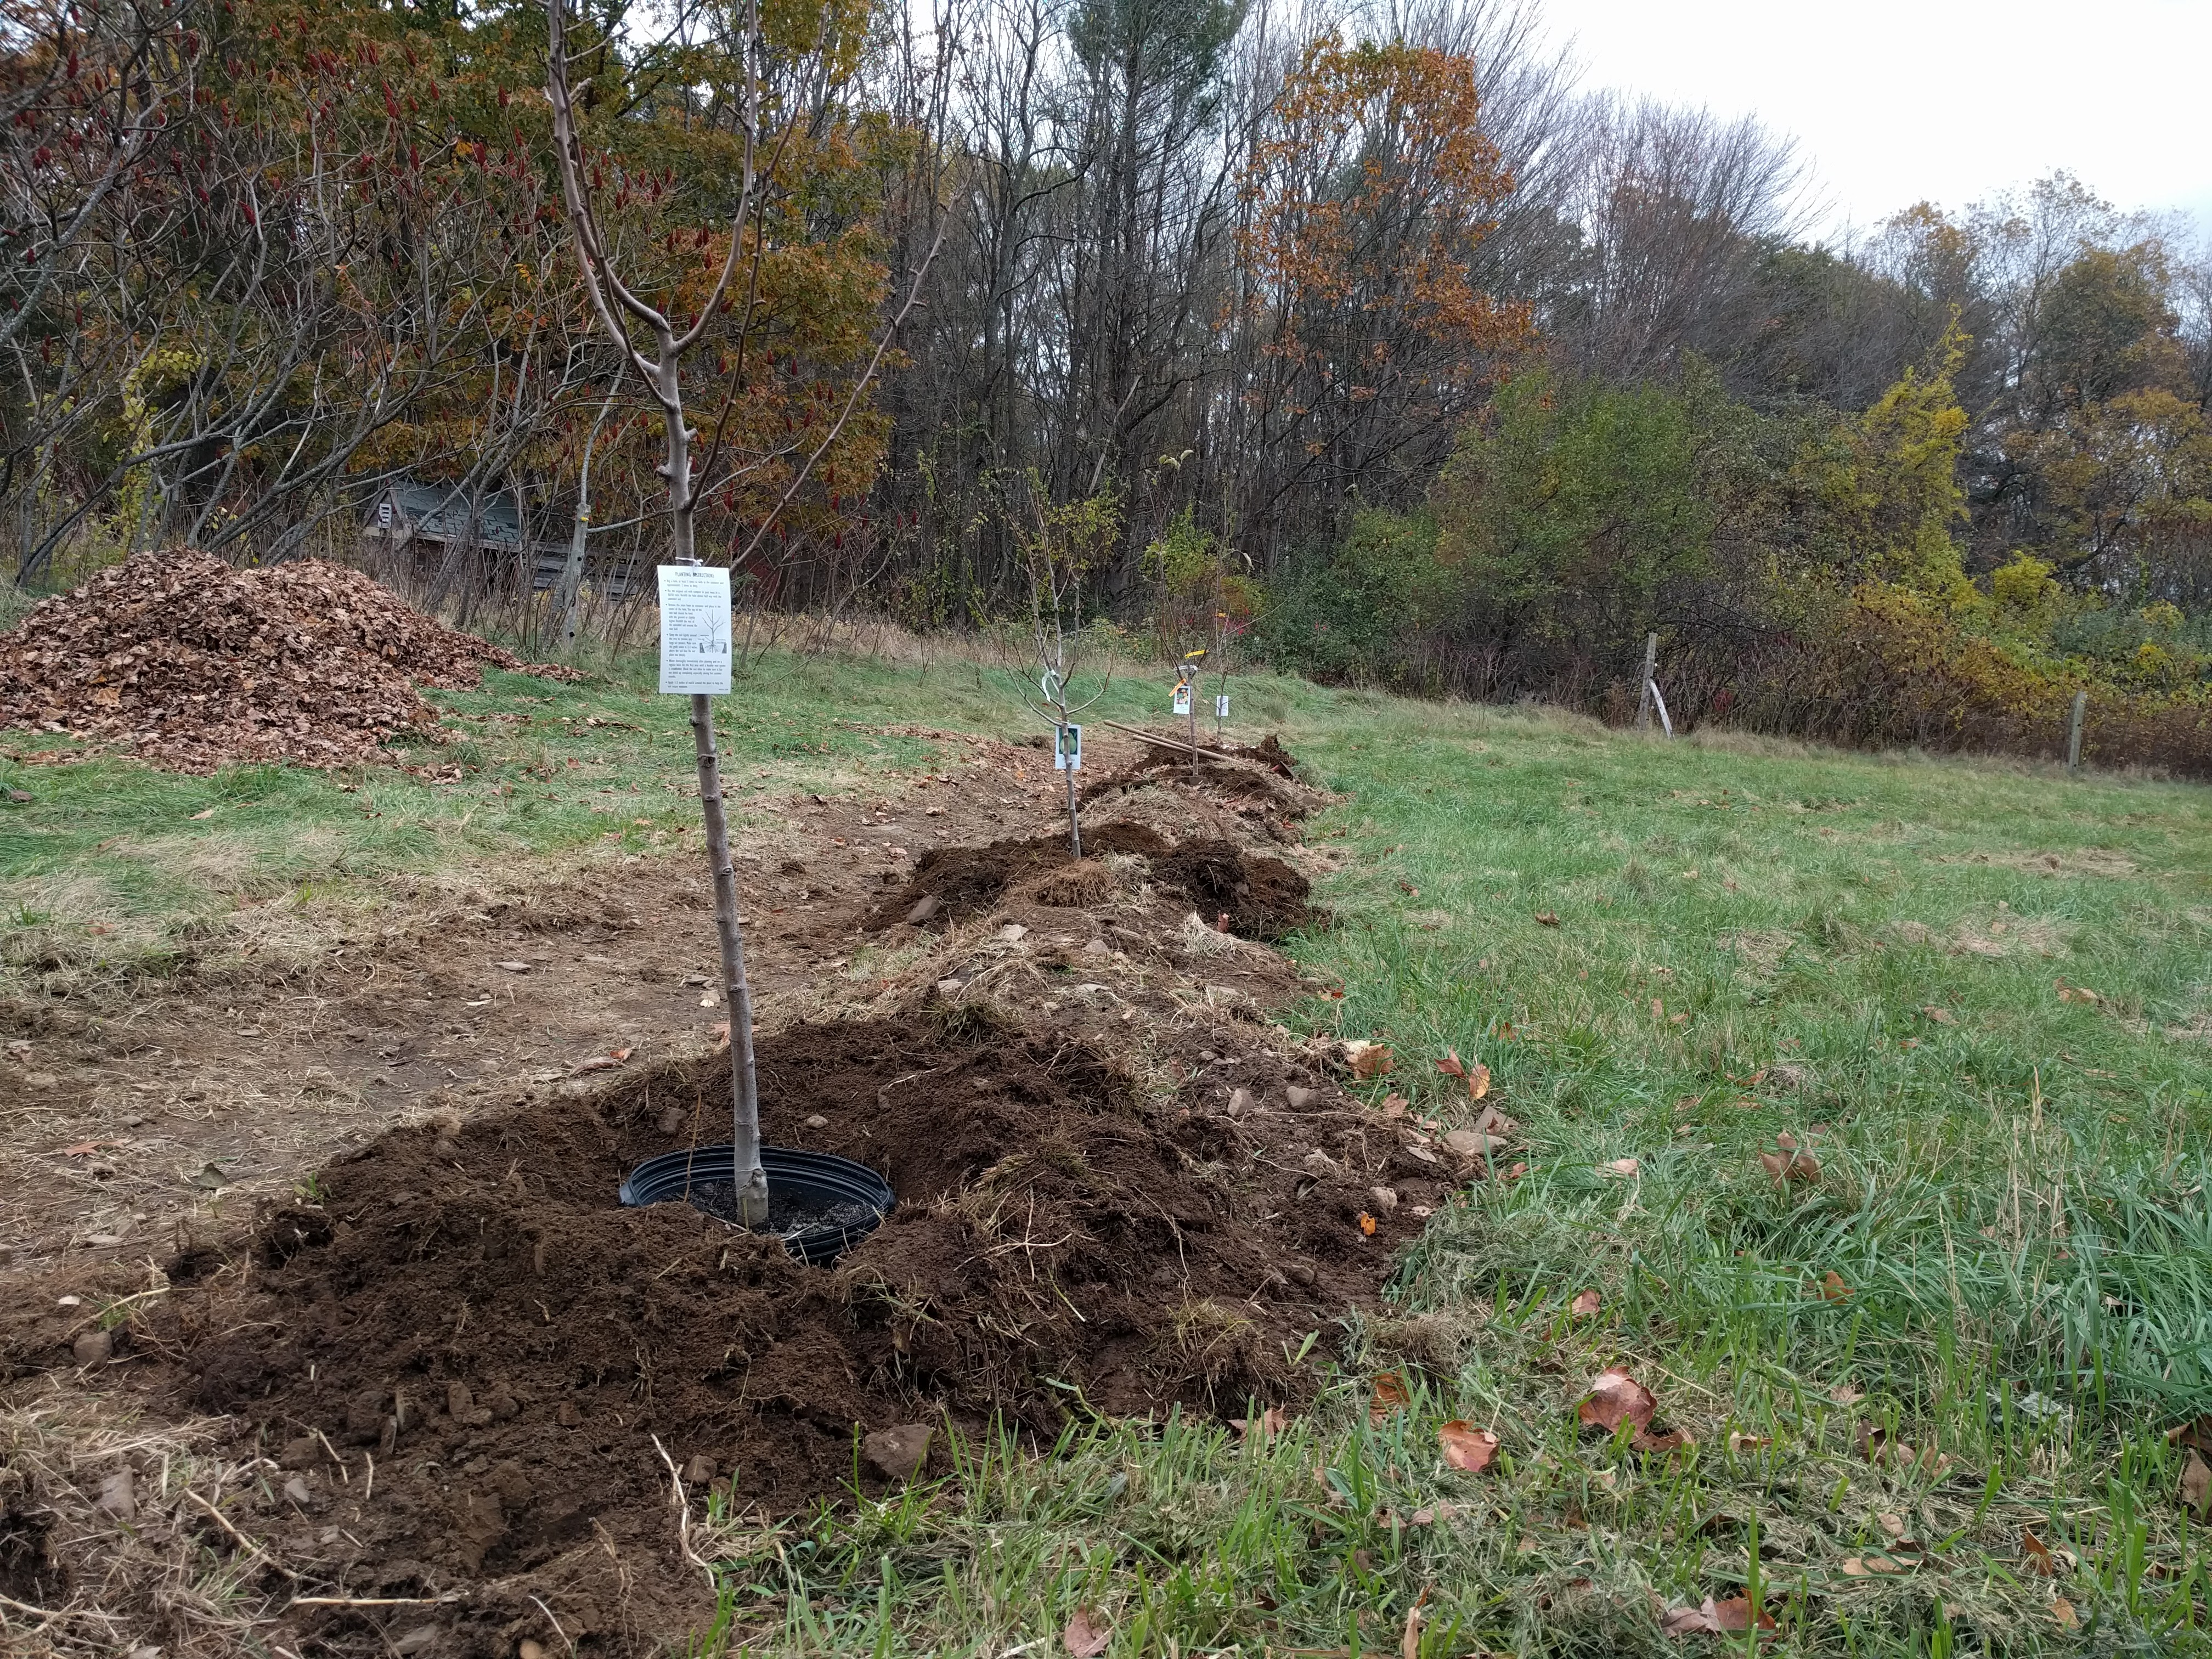 planting trees for a permaculture project